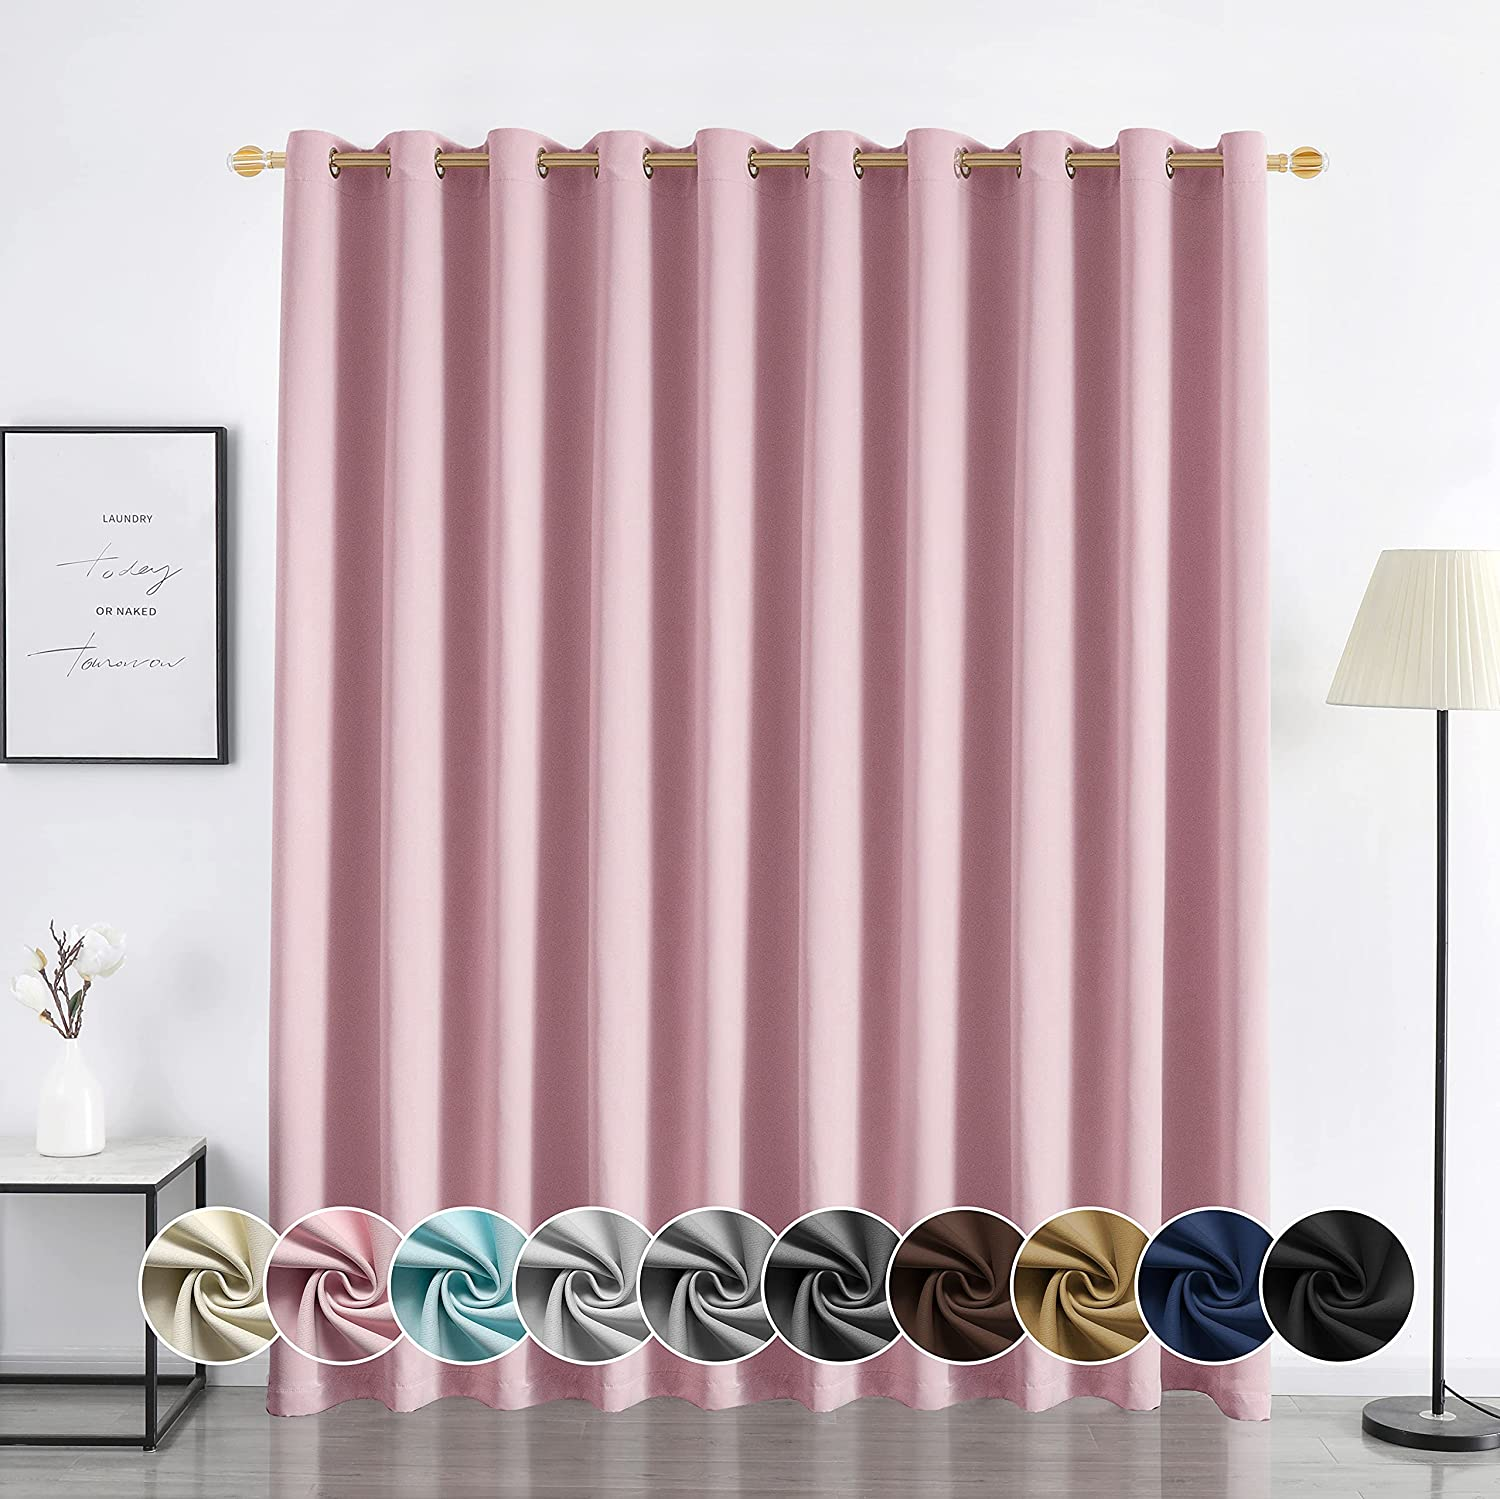 YURIHOME SALENEW Max 74% OFF very popular Blackout Curtains for Bedroom I Noise Thermal Reducing